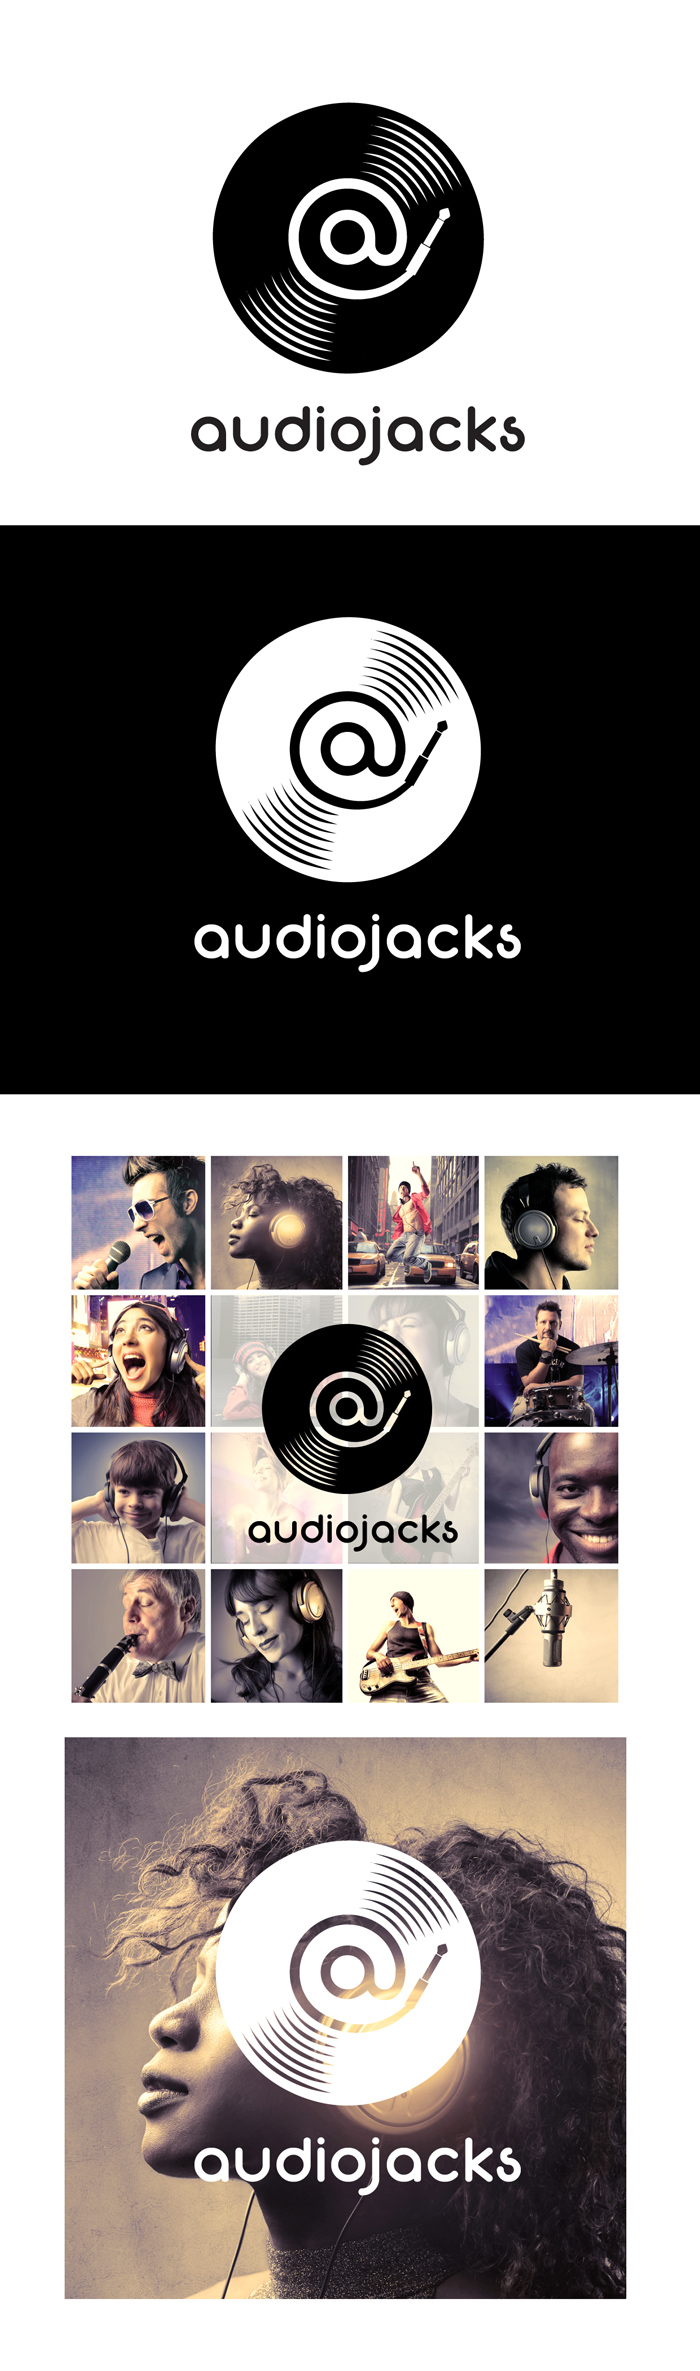 Audiojacks logo project - screen 1